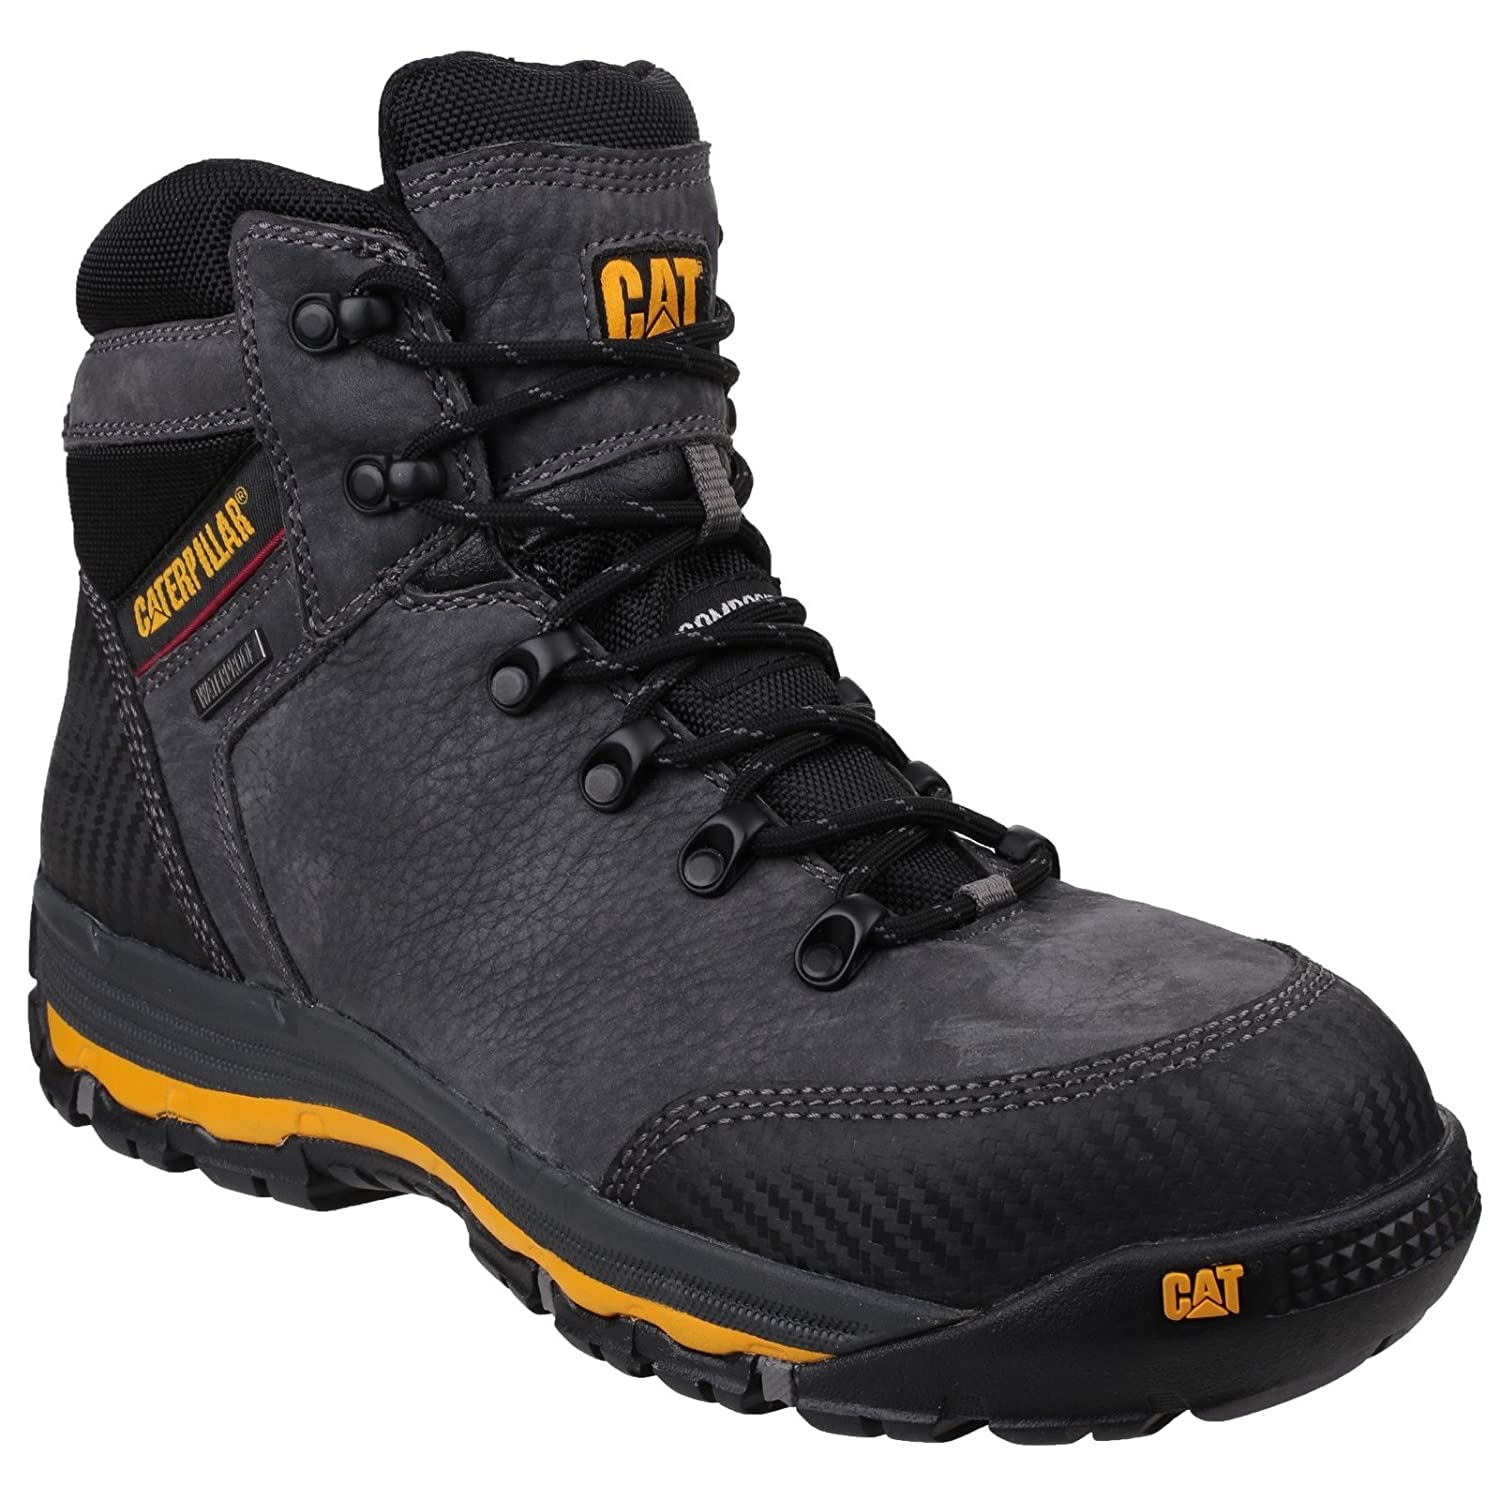 Clothing, Shoes & Accessories Business & Industrial Caterpillar Cat Munising S3 Src Mens Steel Toe Cap Waterproof Safety Boots Ppe